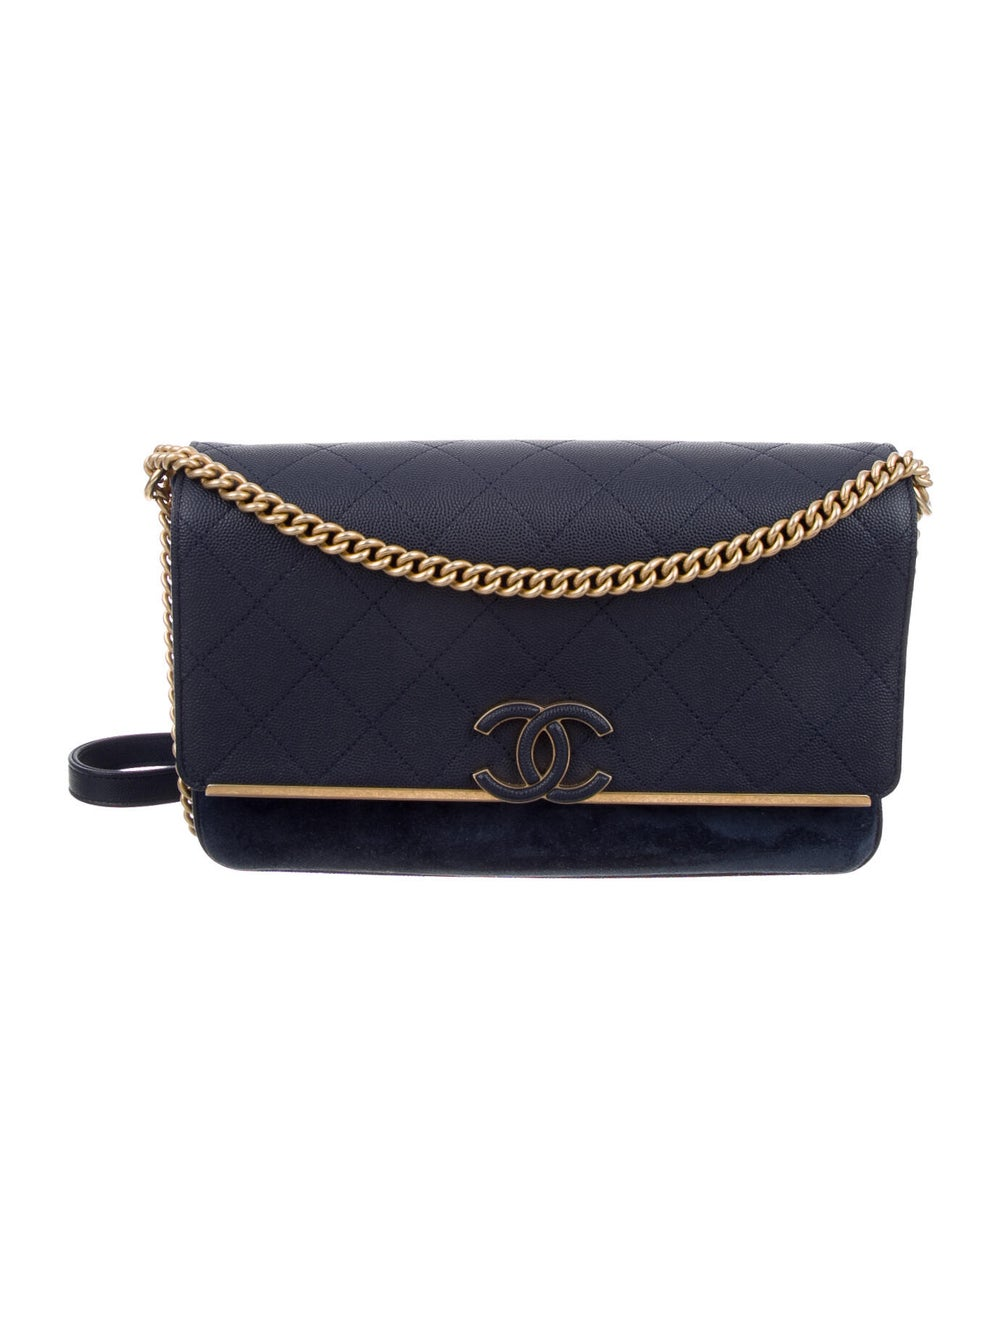 Chanel Suede Lady Coco Flap Bag Blue - image 1